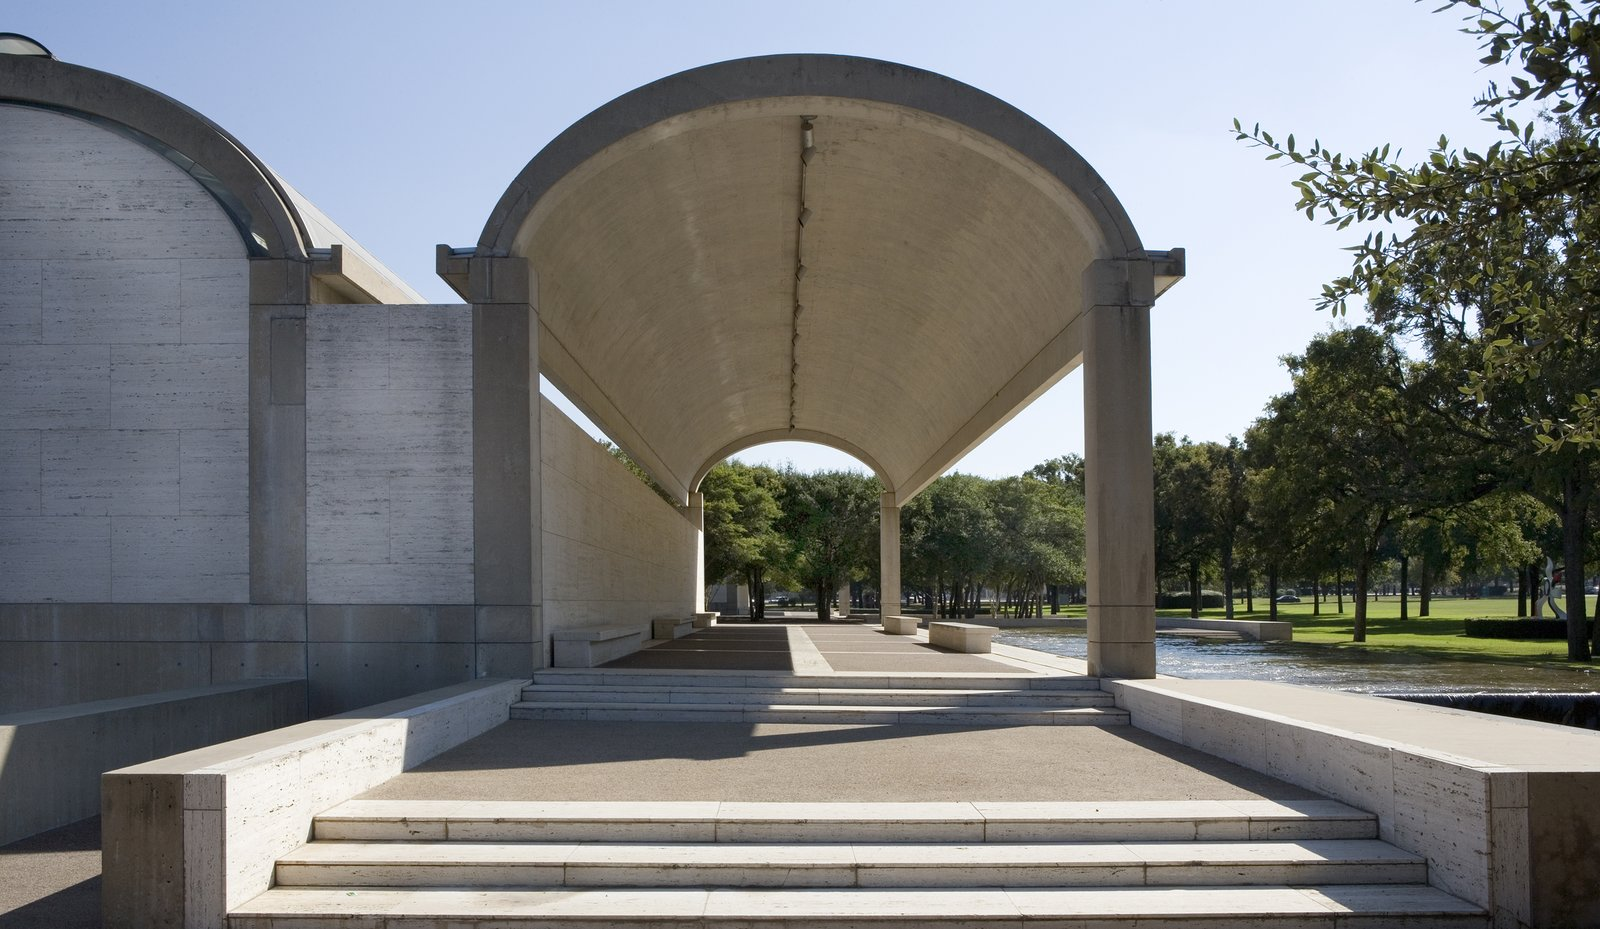 Kimbell Art Museum (Fort Worth, Texas: 1972)  Recalling the arched construction of Roman architects, Kahn's tubular museum design utilizes a row of cycloid barrel vaults, lined with reflective skylights that funnel natural light into the lengthy galleries.  Photo 2 of 10 in Design Icon: 9 Buildings by Louis Kahn